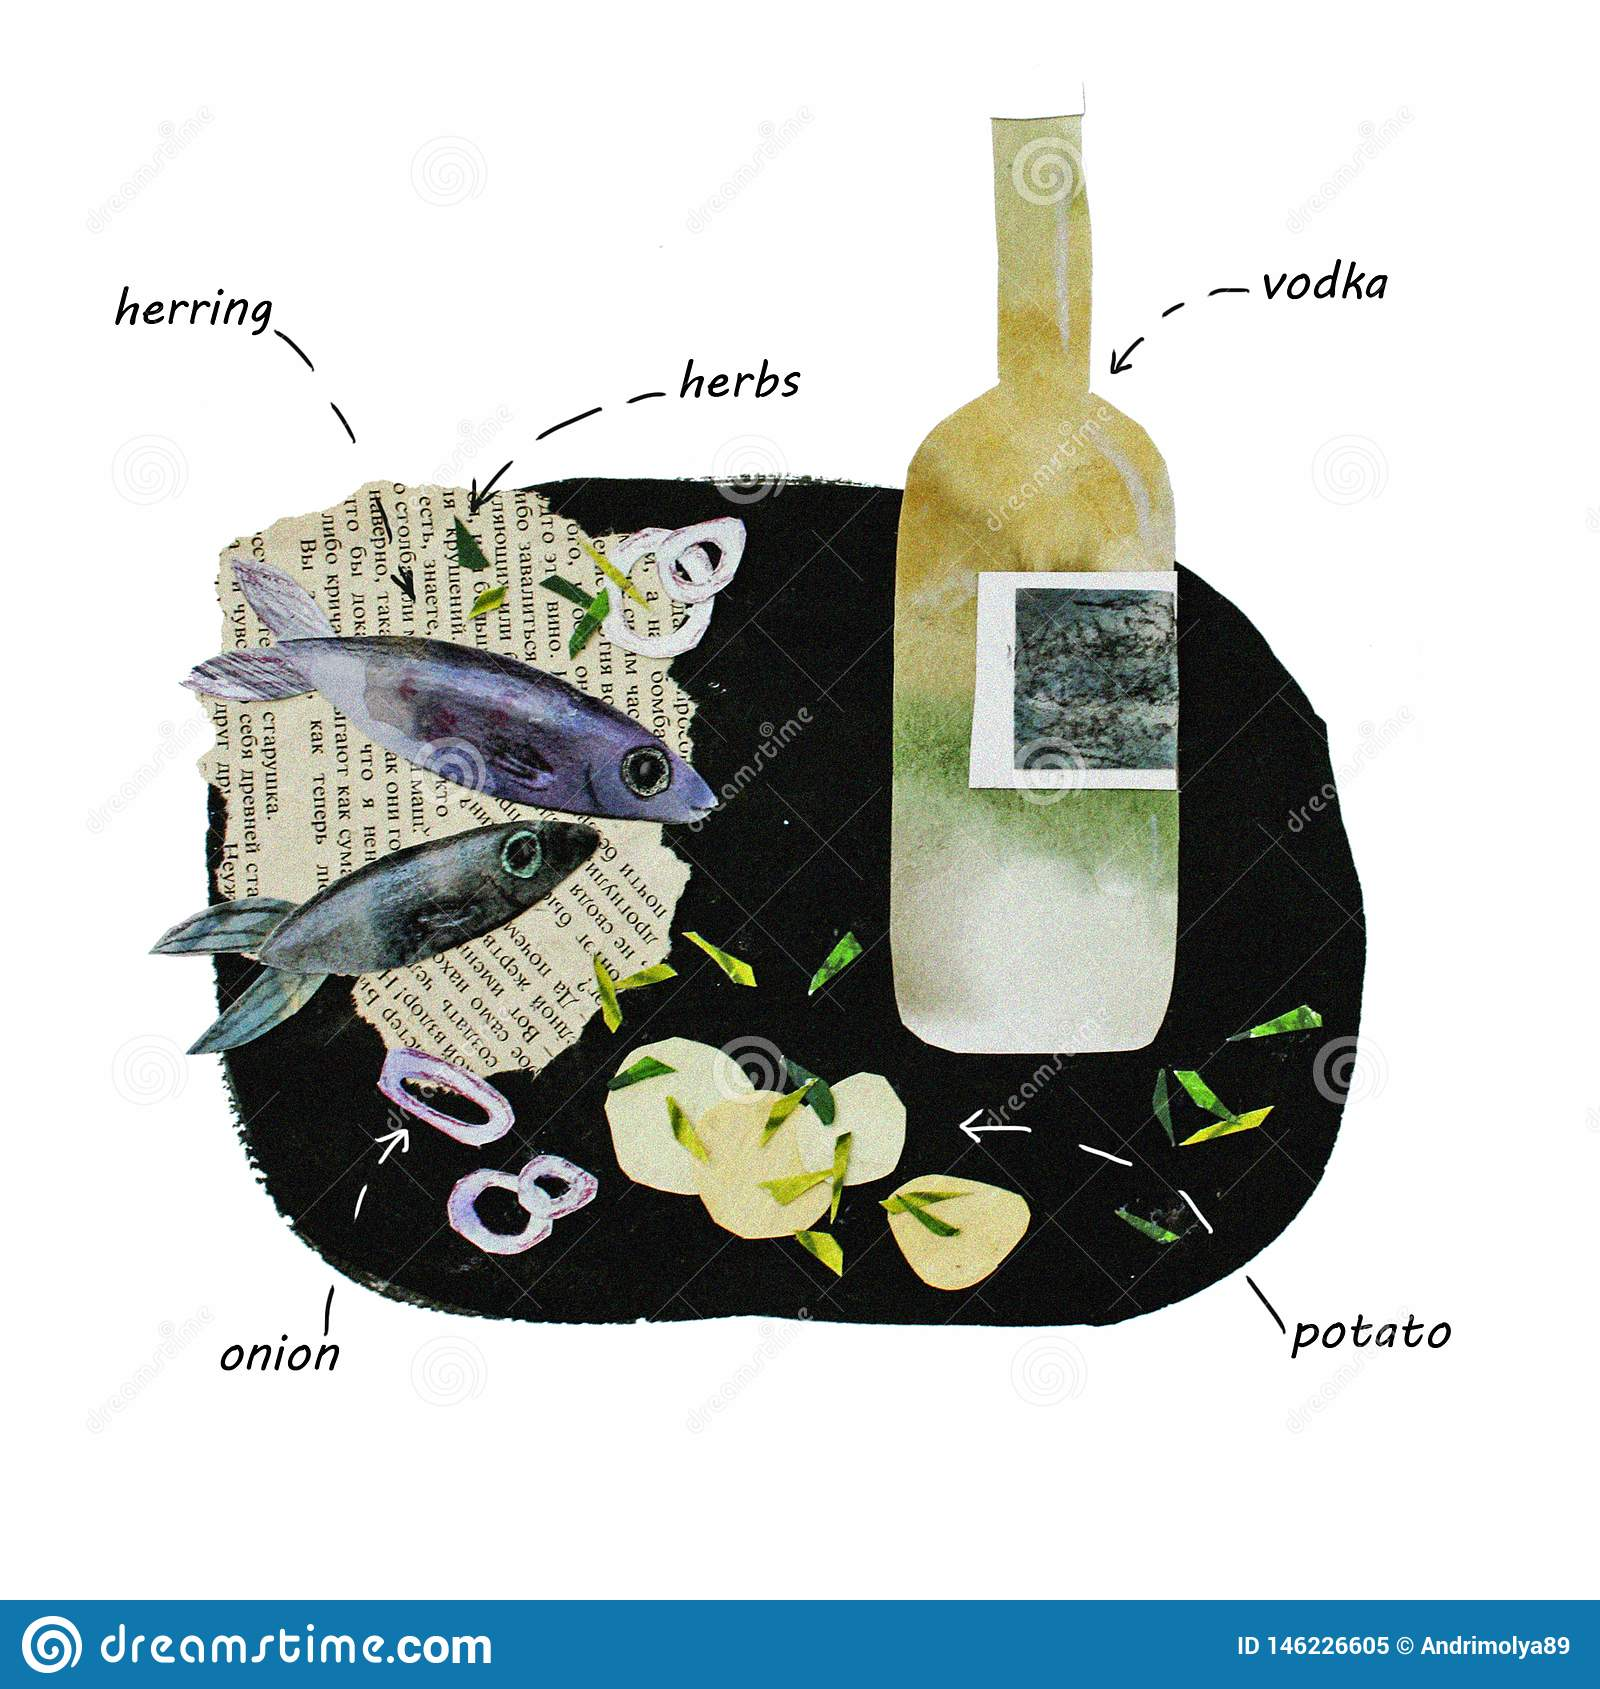 Illustration of collage vodka and herring